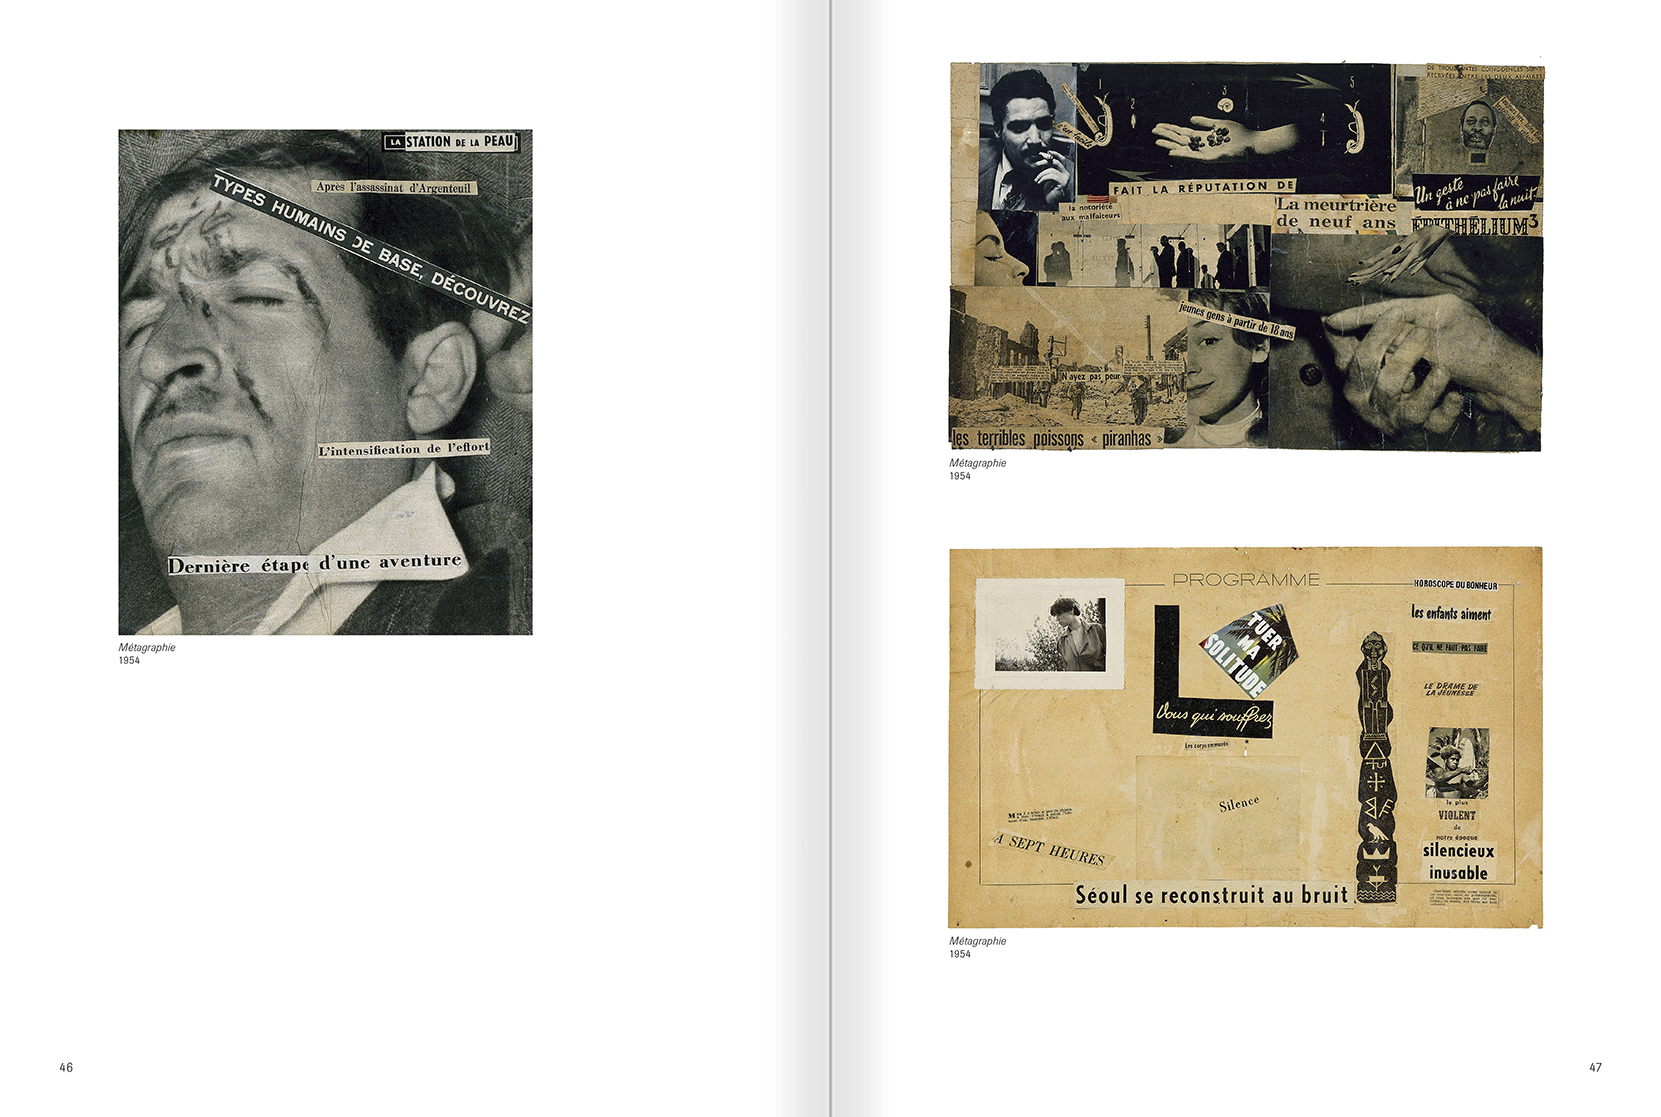 Selection from the catalogue 'Gil J Wolman. I am immortal and alive', pages 46 and 47